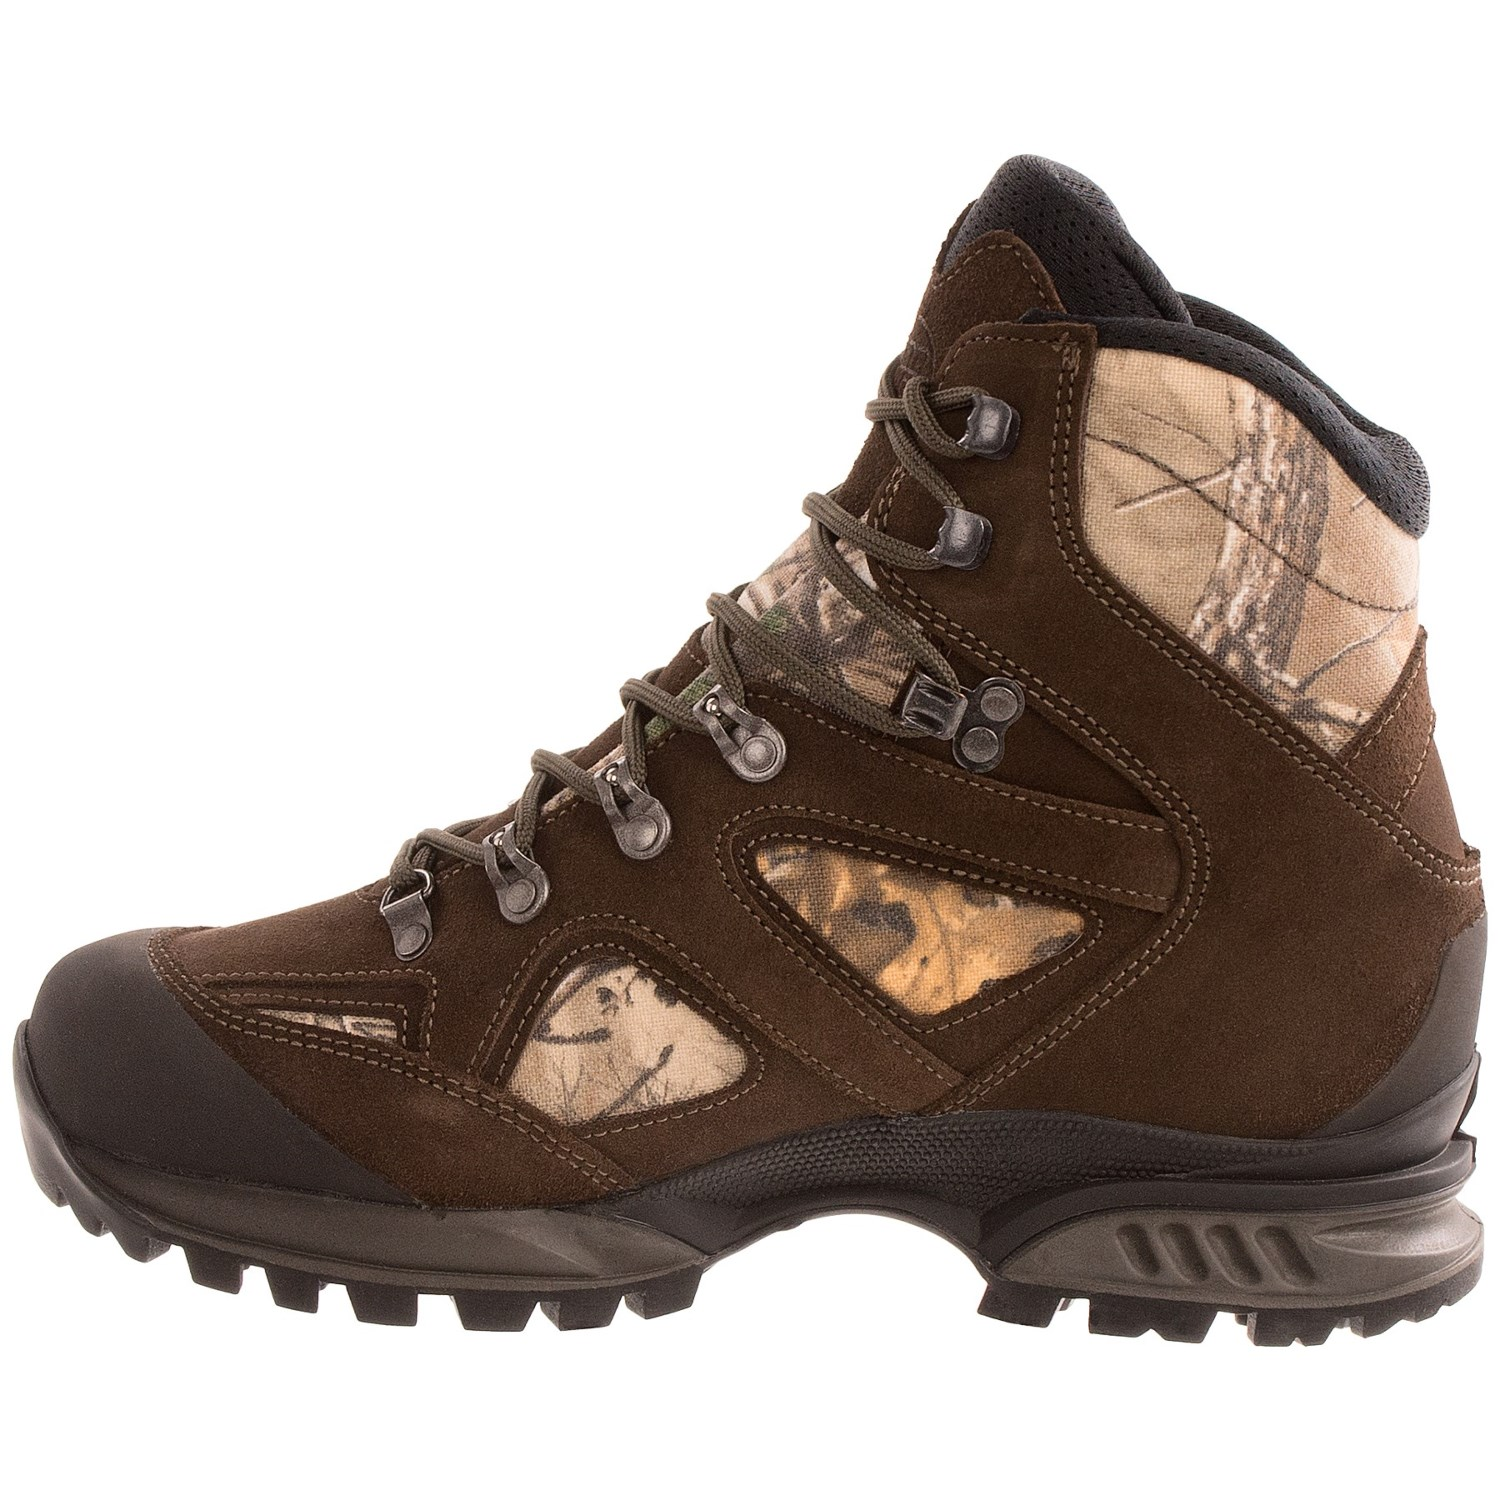 Popular Merrell Daria Gore-Tex Womens Shoes